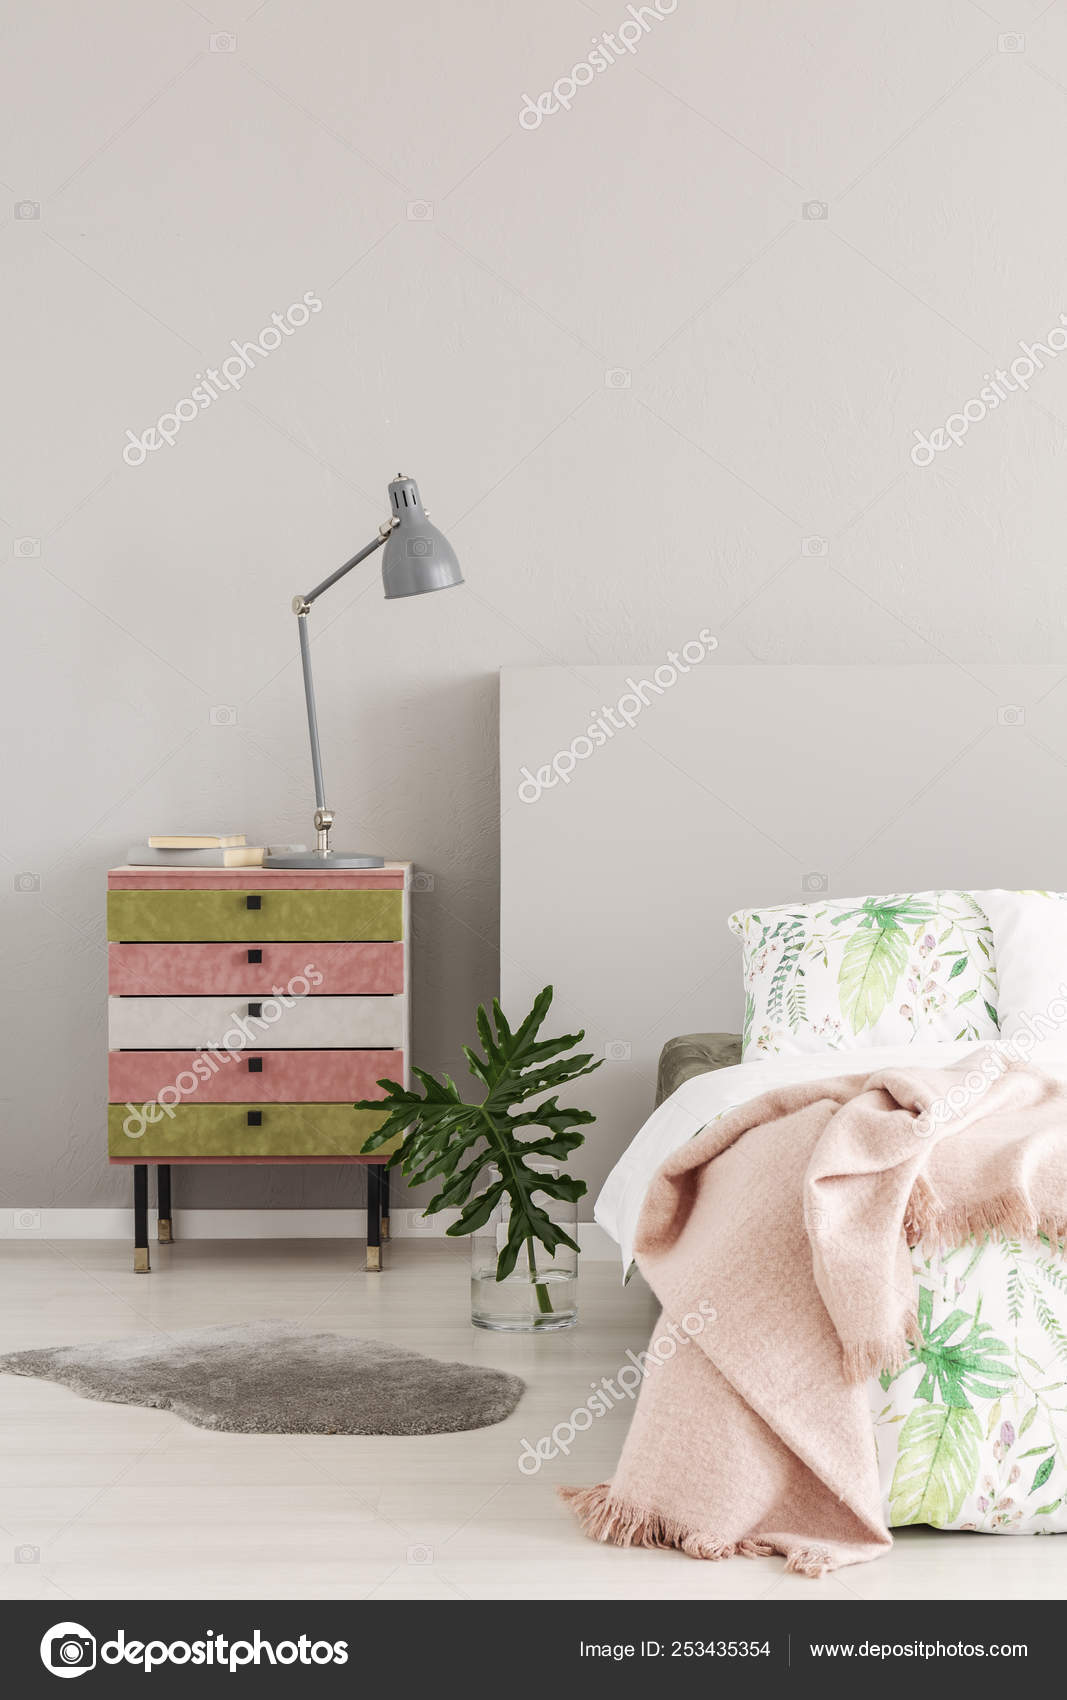 Olive Green And Pastel Pink Colored Nightstand Next To Glass Vase With Leaf In Simple Bedroom Interior Copy Space On The Empty Grey Wall Stock Photo C Photographee Eu 253435354